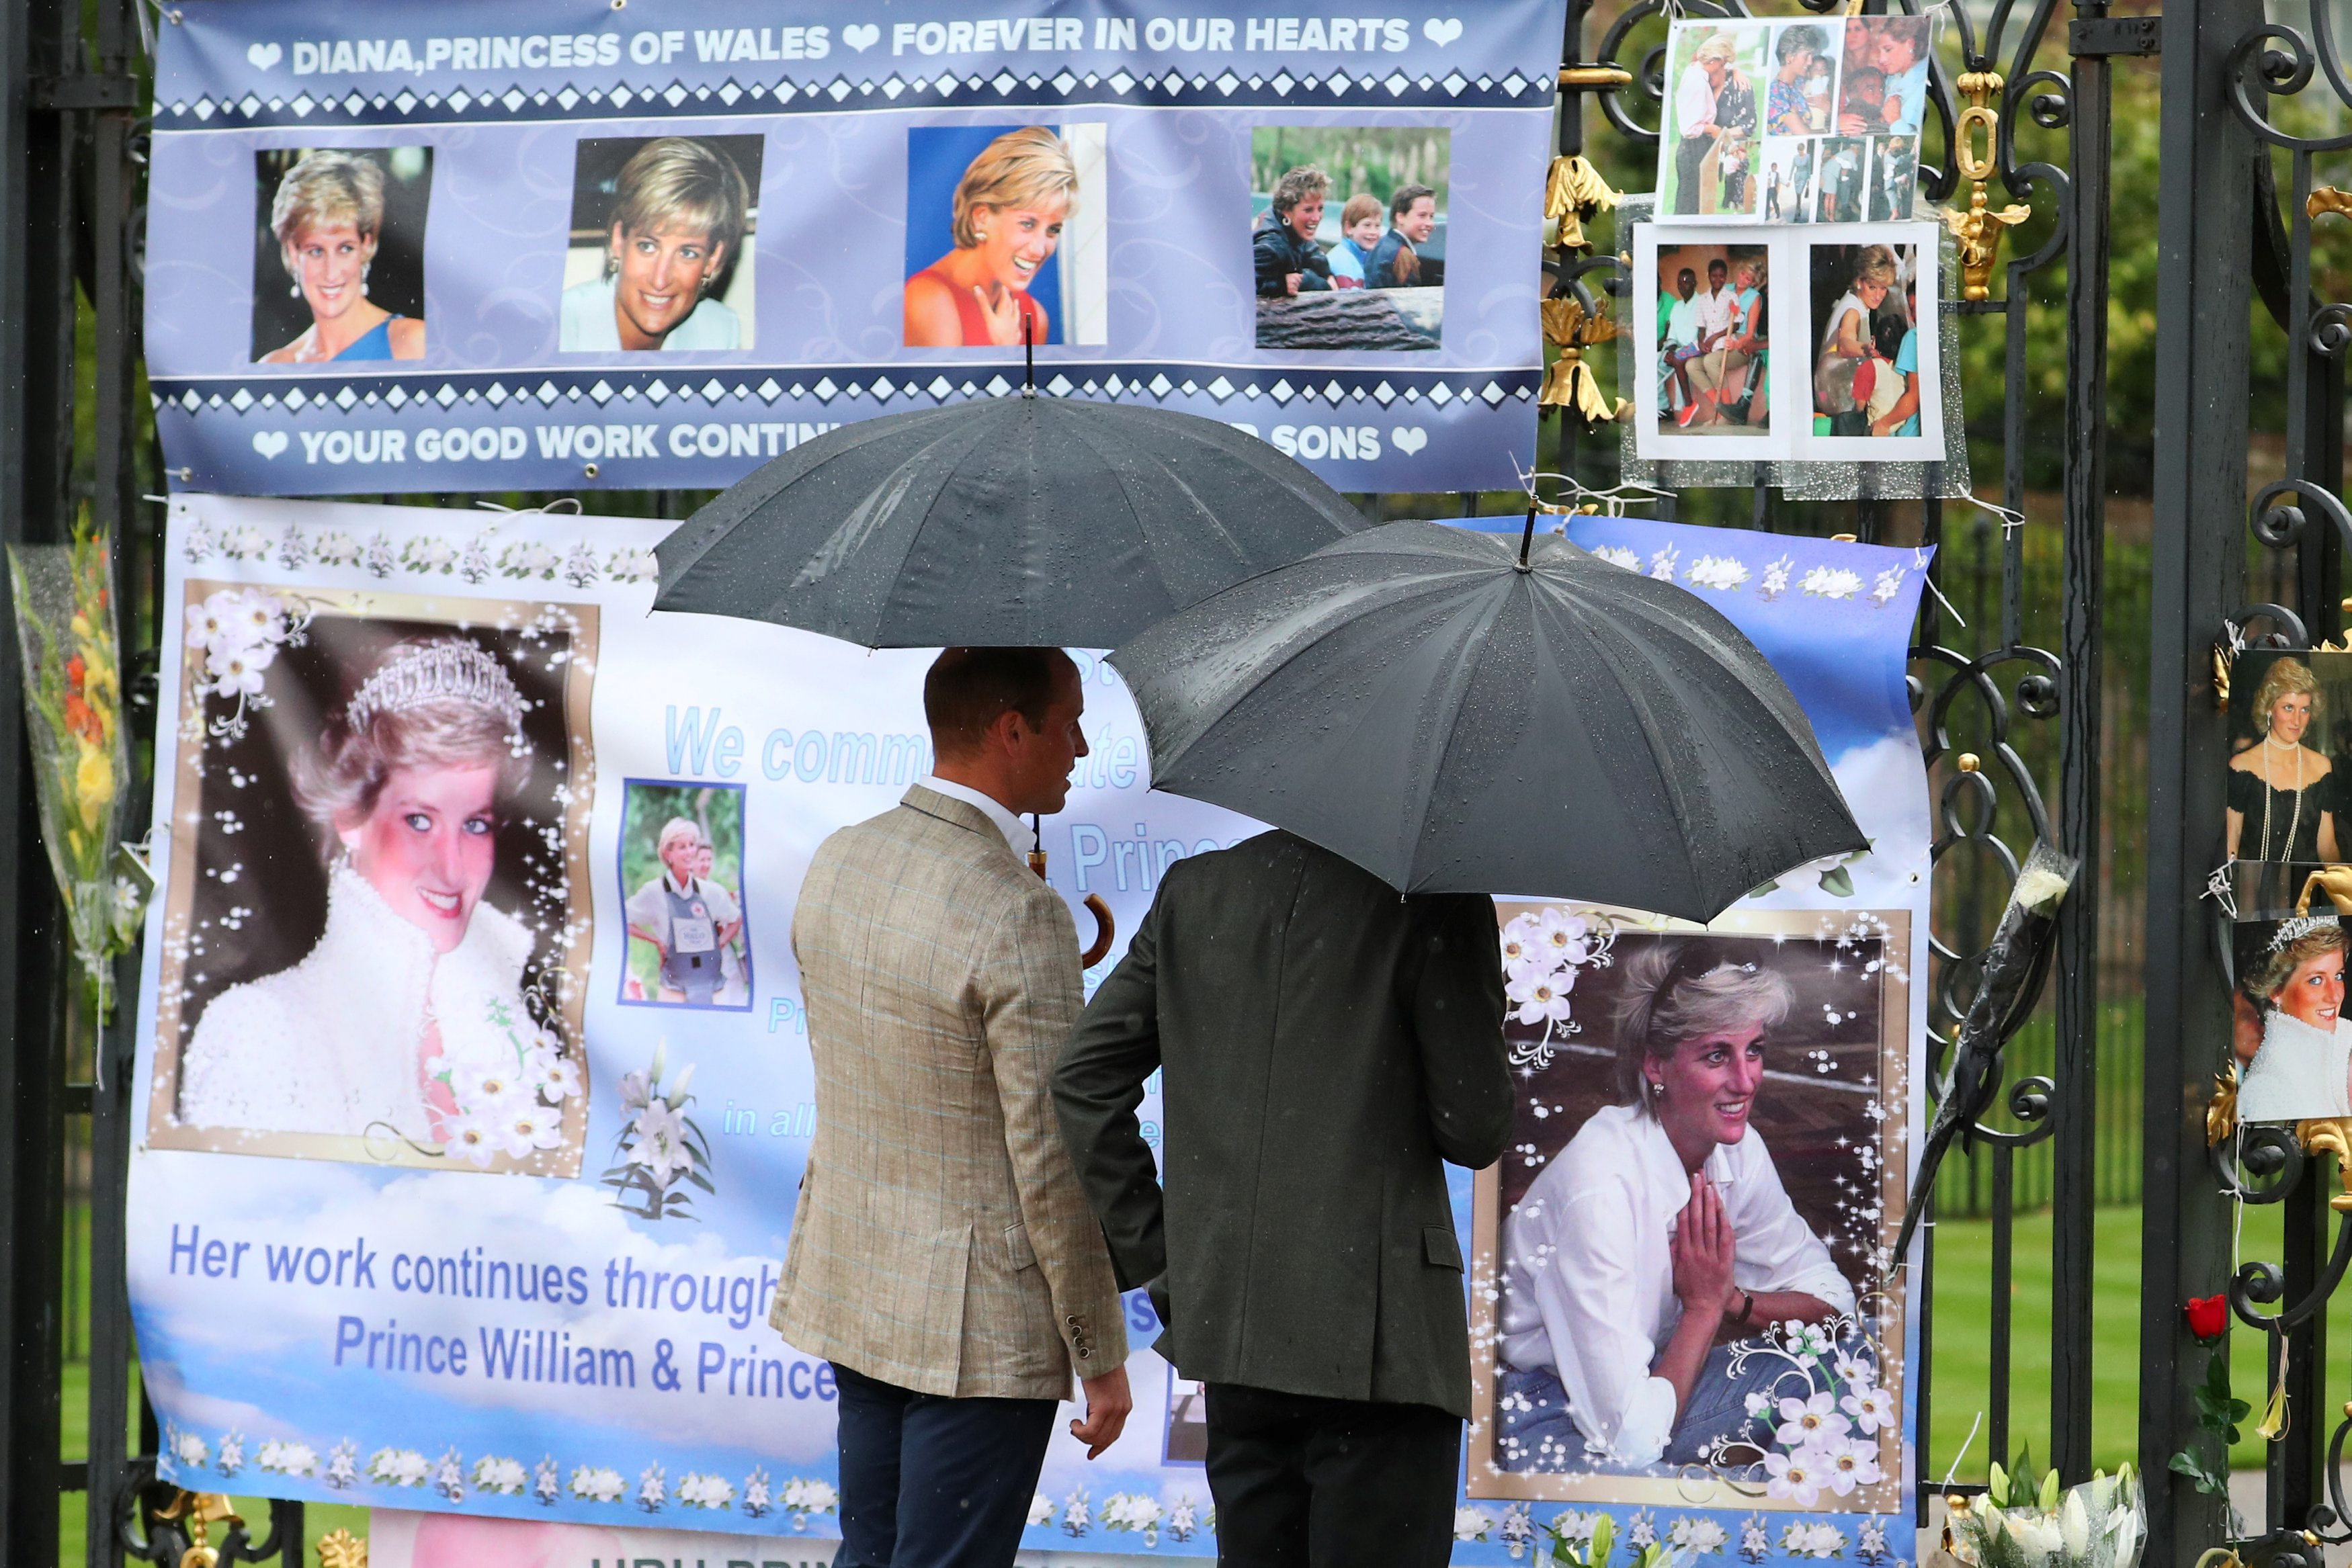 Britain's Prince William, Duke of Cambridge and Prince Harry look at flowers and tributes left in memory of the late Princess Diana at the gates of her former residence Kensington Palace in London, Britain, August 30, 2017. REUTERS/Hannah McKay  NO RESALES. NO ARCHIVES